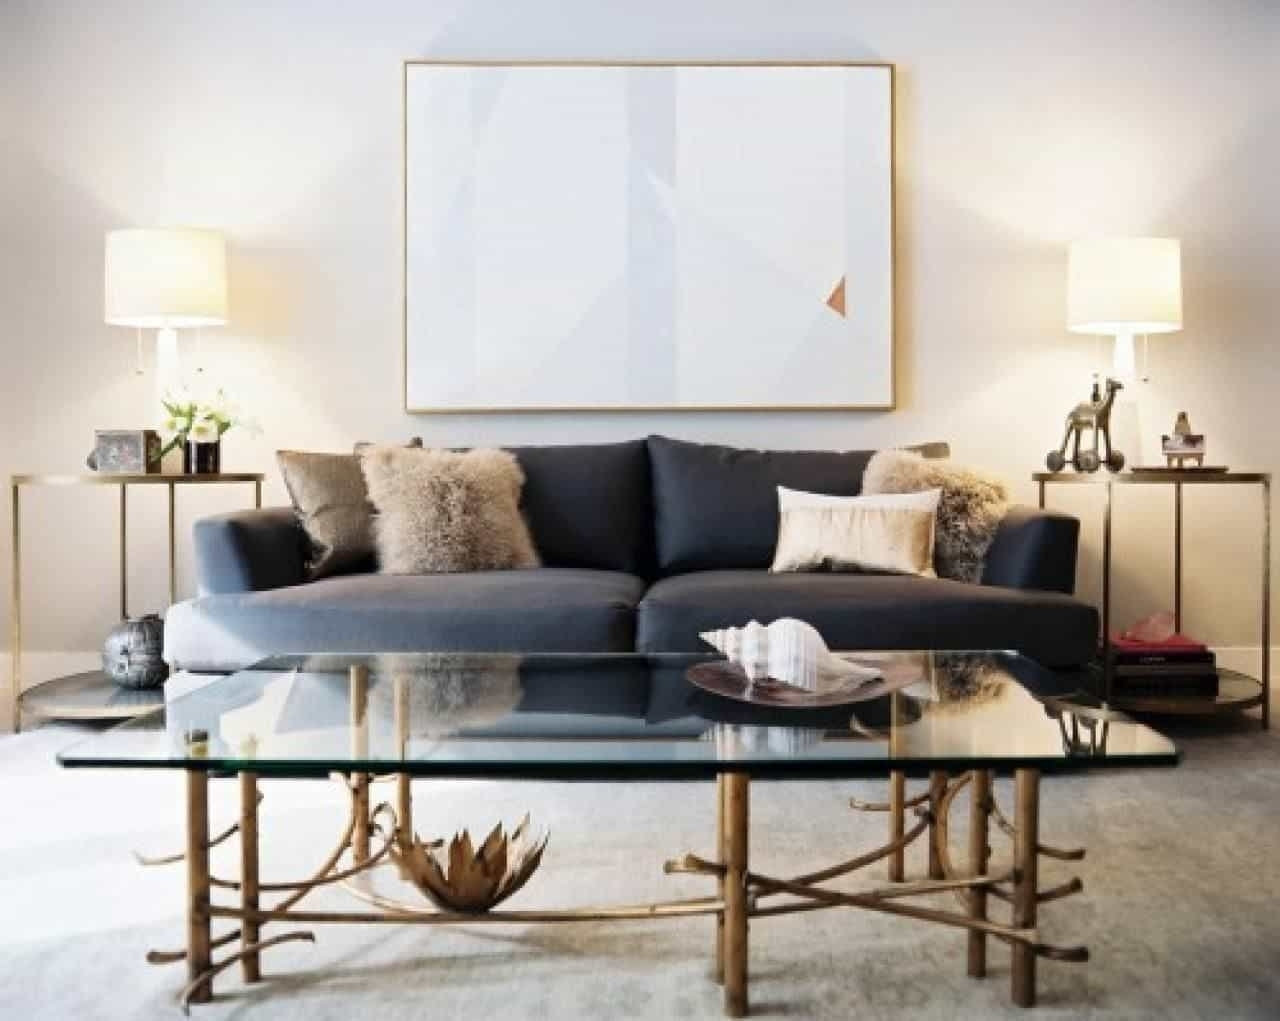 Inspiration about Modern Living Room With Grey Sofa And Side Tables With Table Lamps For Table Lamps For Modern Living Room (#15 of 15)